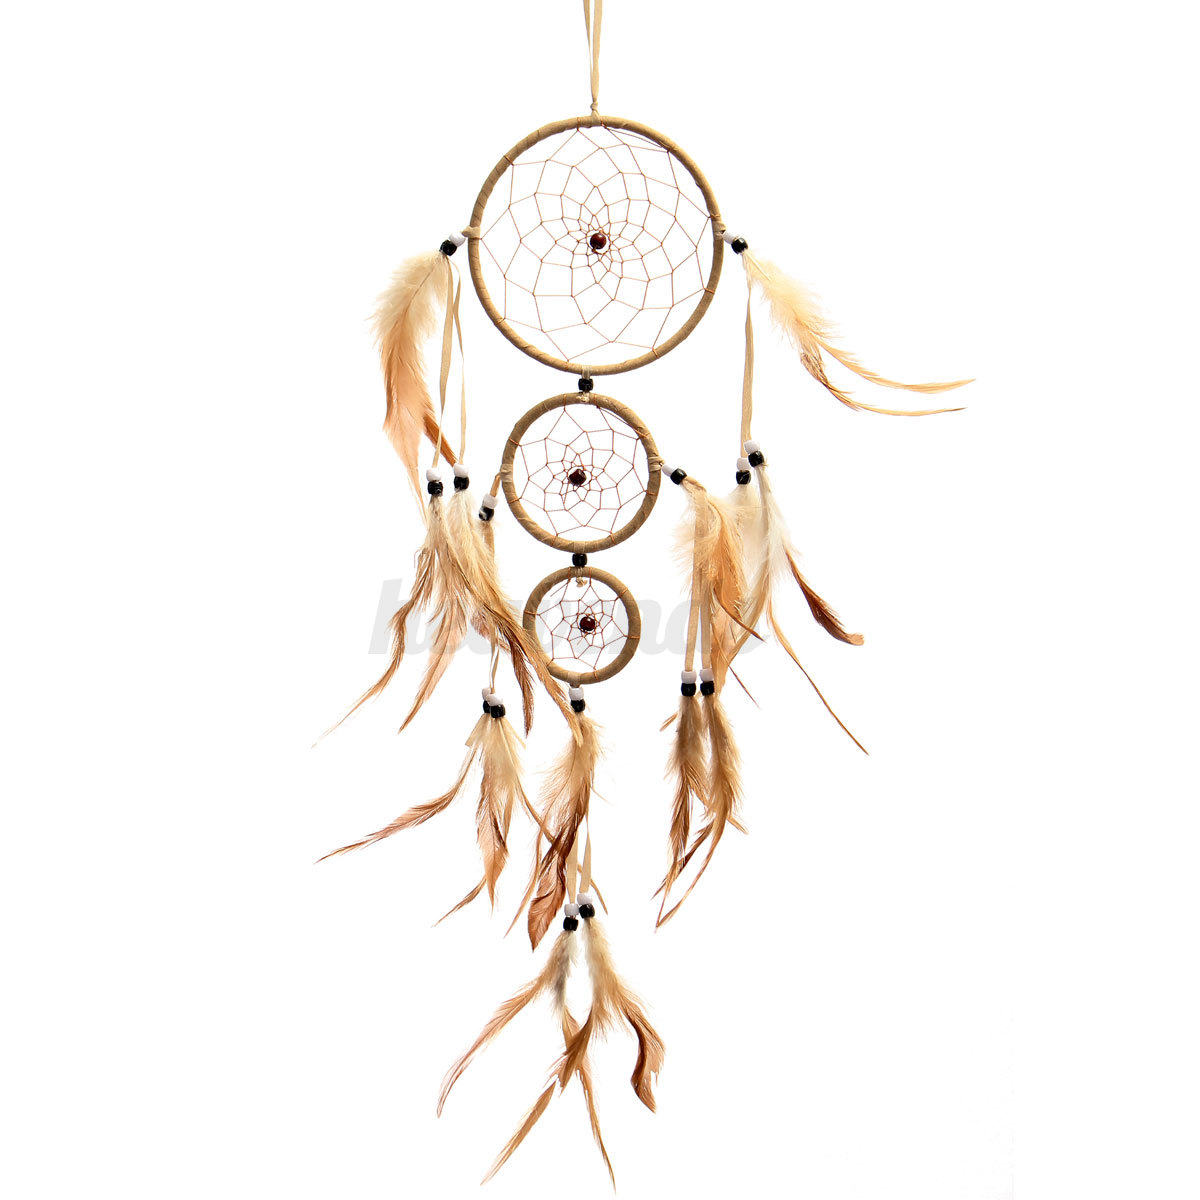 vari t capteur de r ve attrape tenture dreamcatcher plume suspendu mural d cor ebay. Black Bedroom Furniture Sets. Home Design Ideas